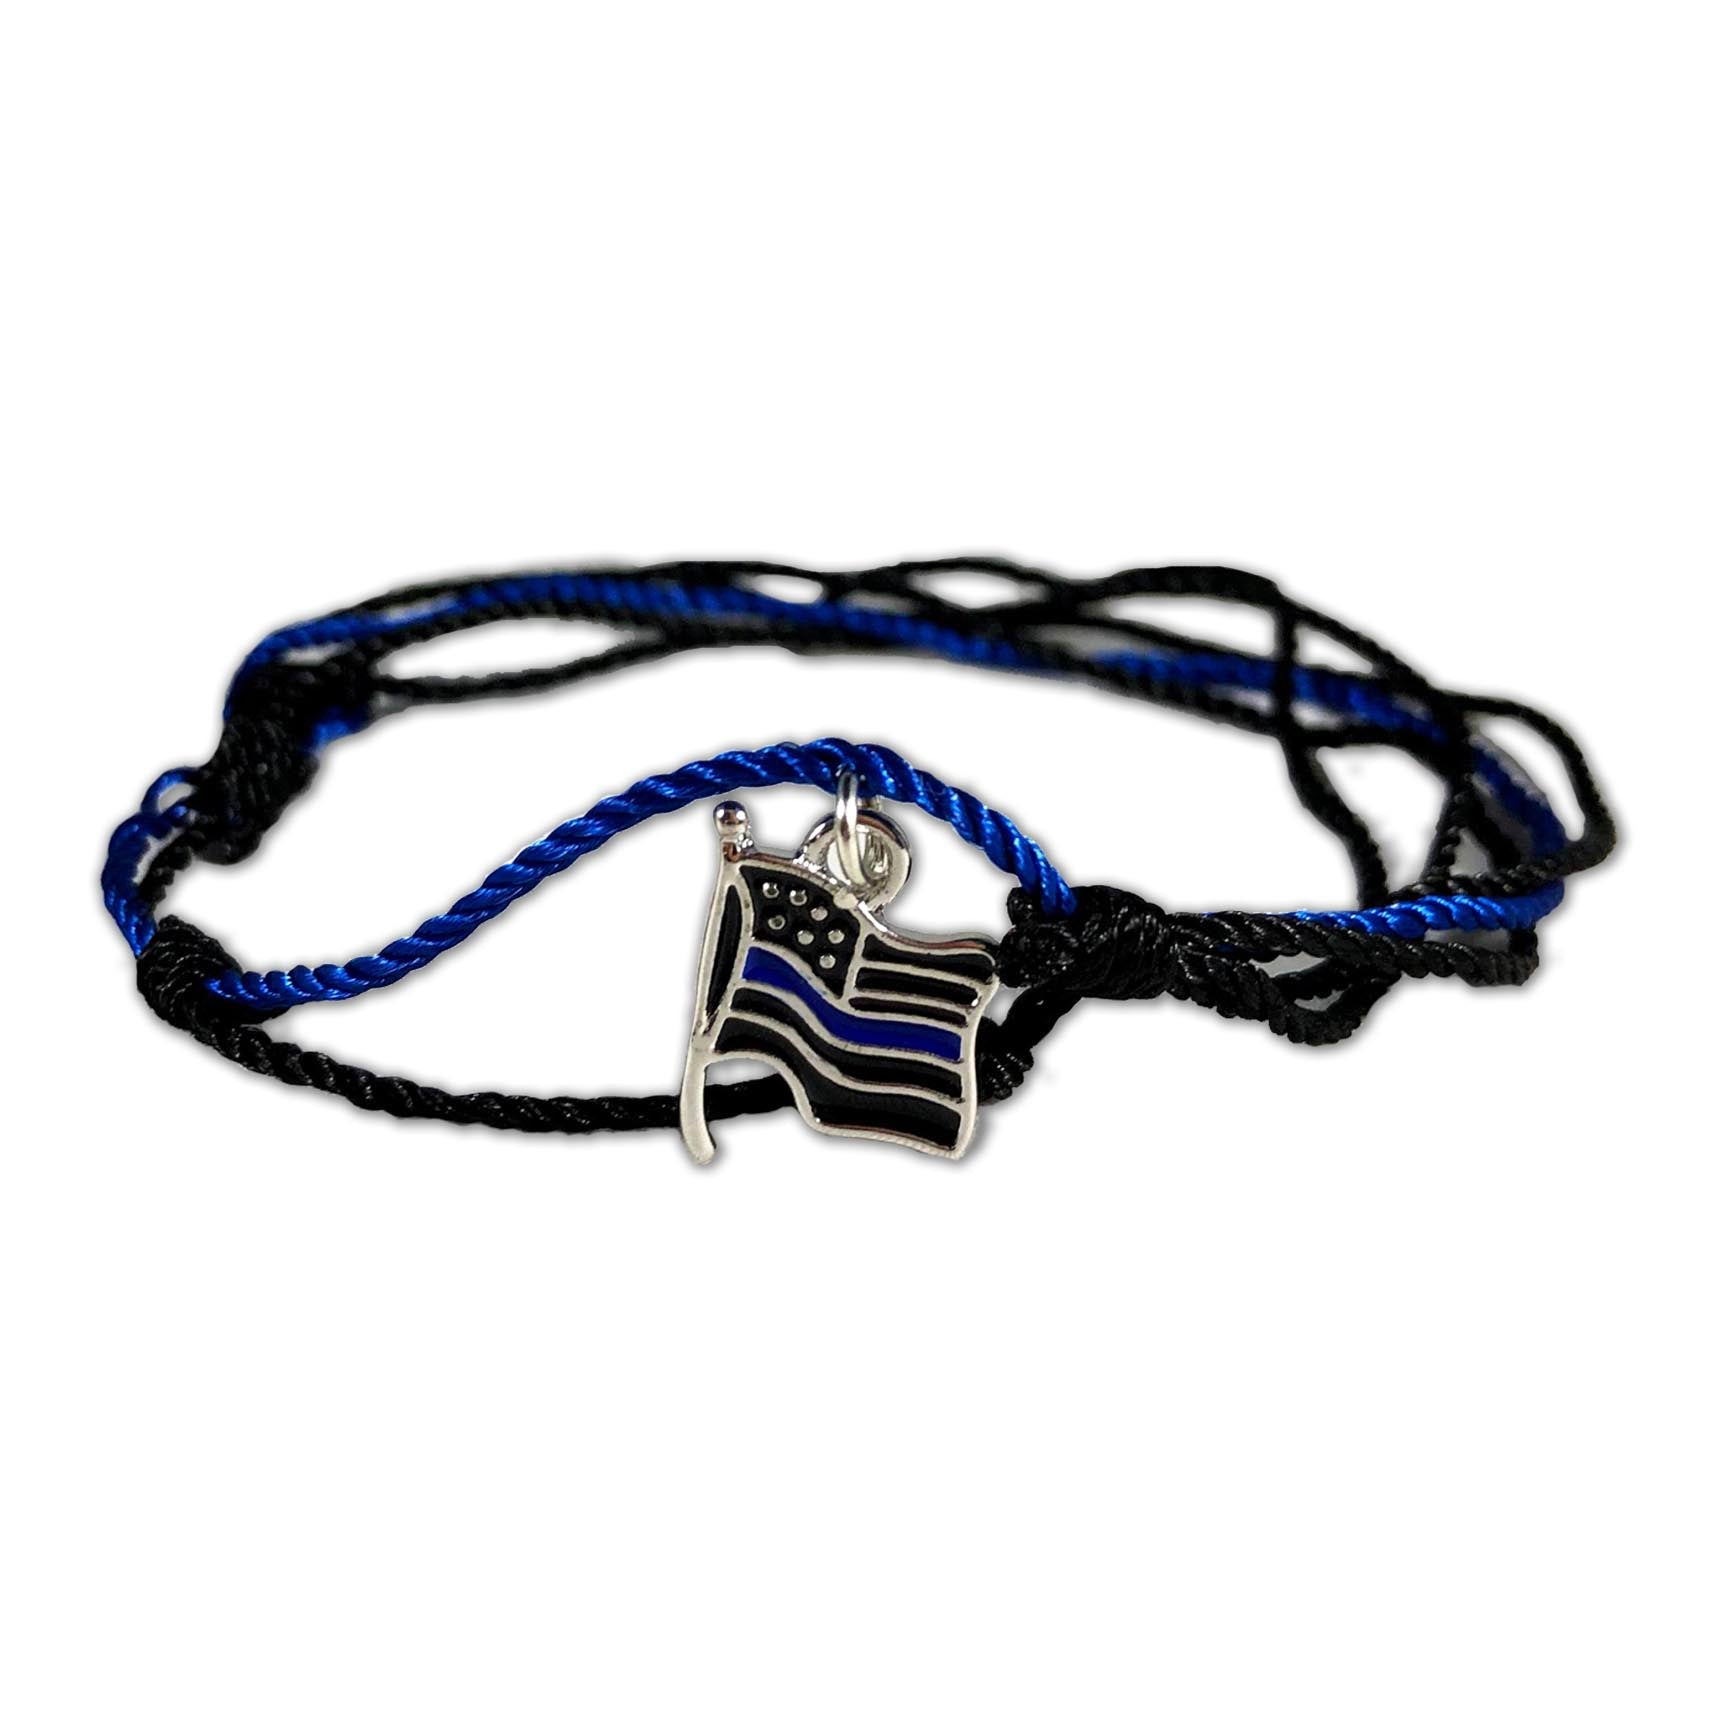 medallion bracelets to eagle paracord items line police bracelet thin survival click edition blue enlarge